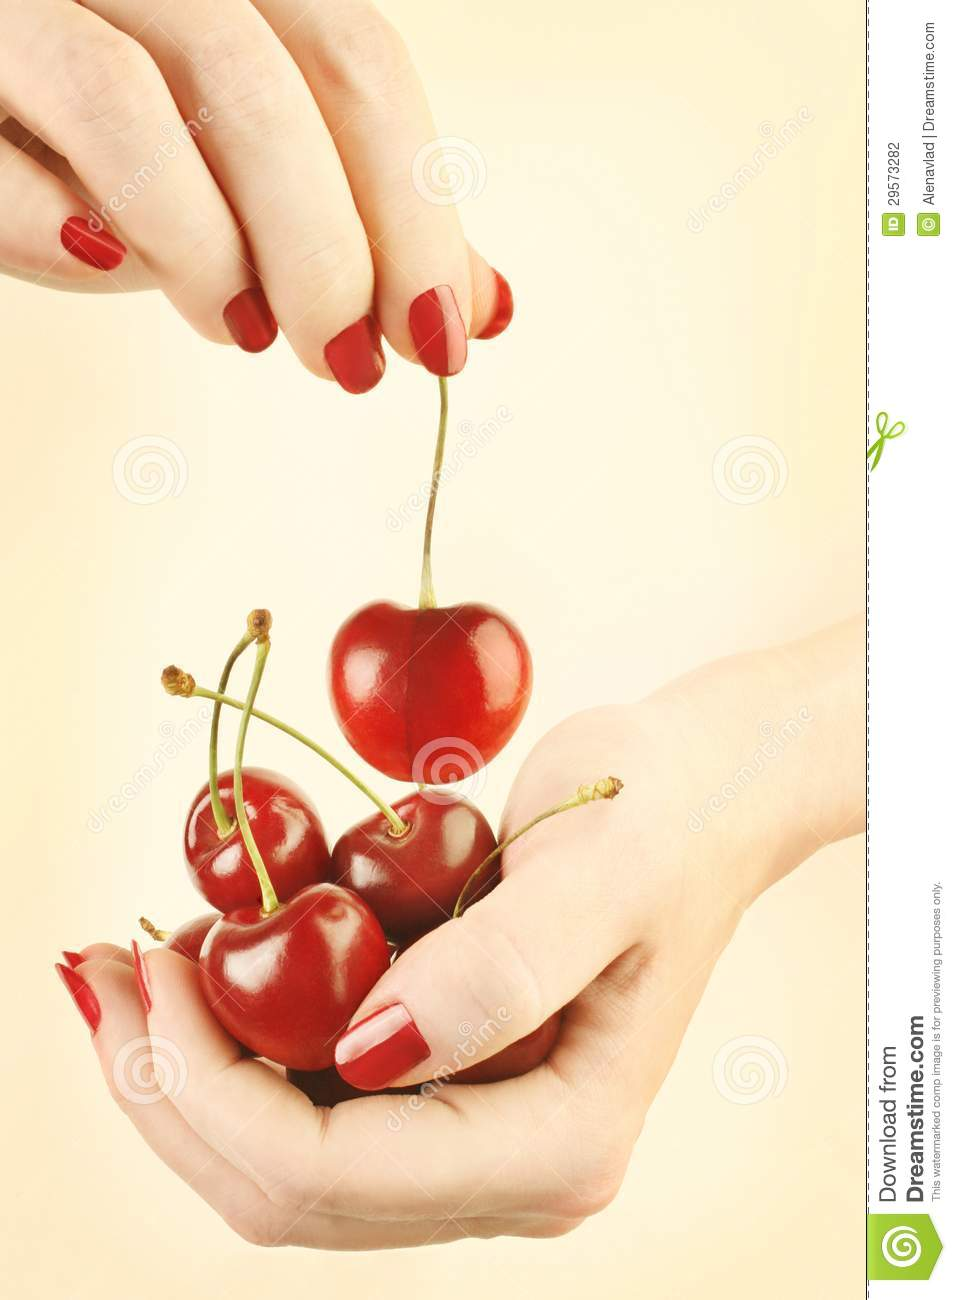 Hands cherry with red nails manicure